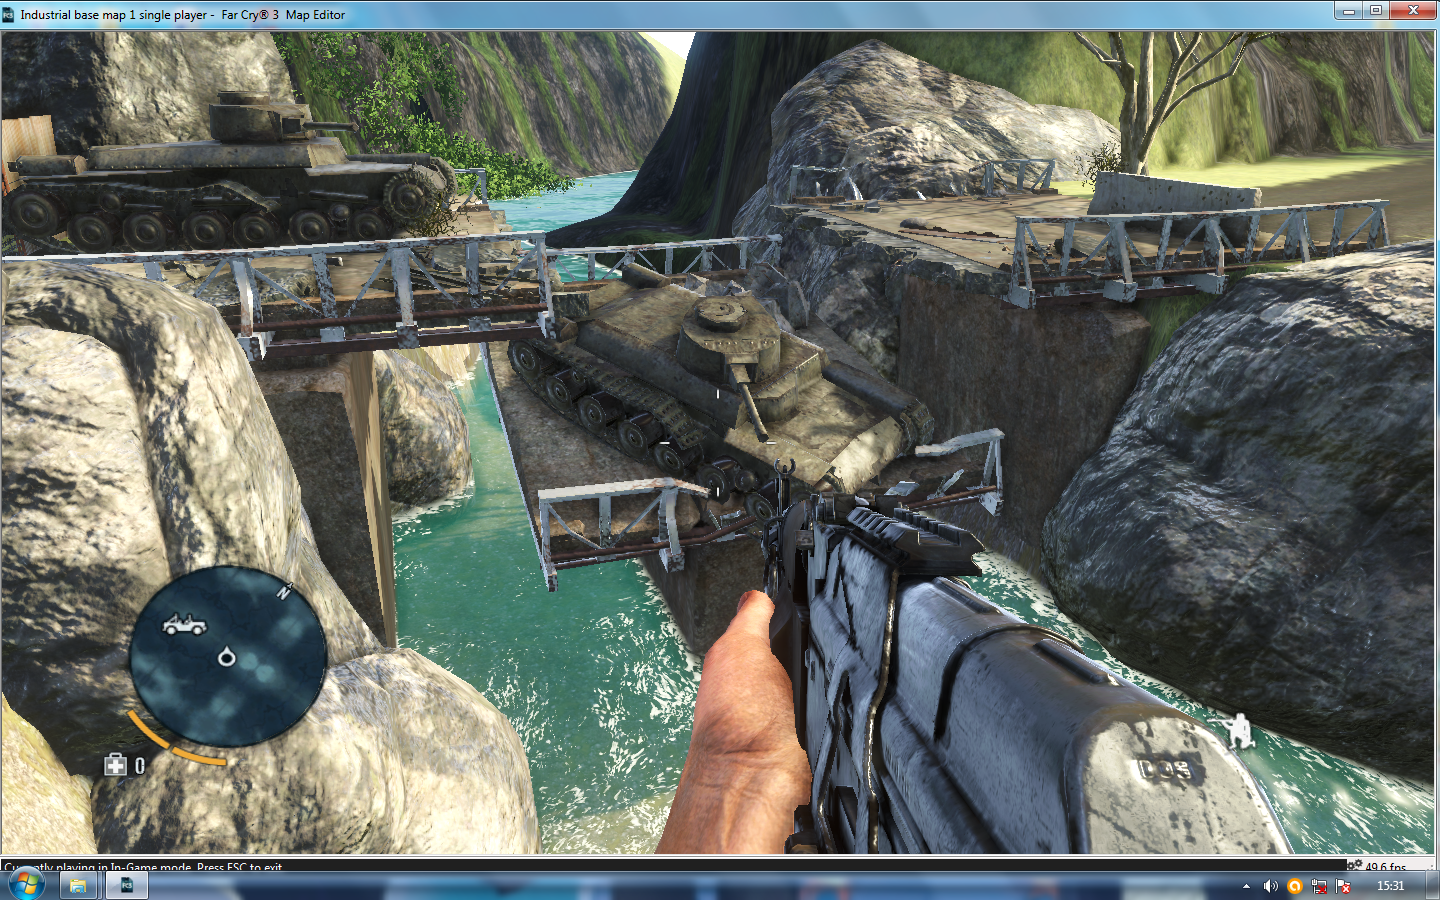 Far cry 3 map editor softonic download.